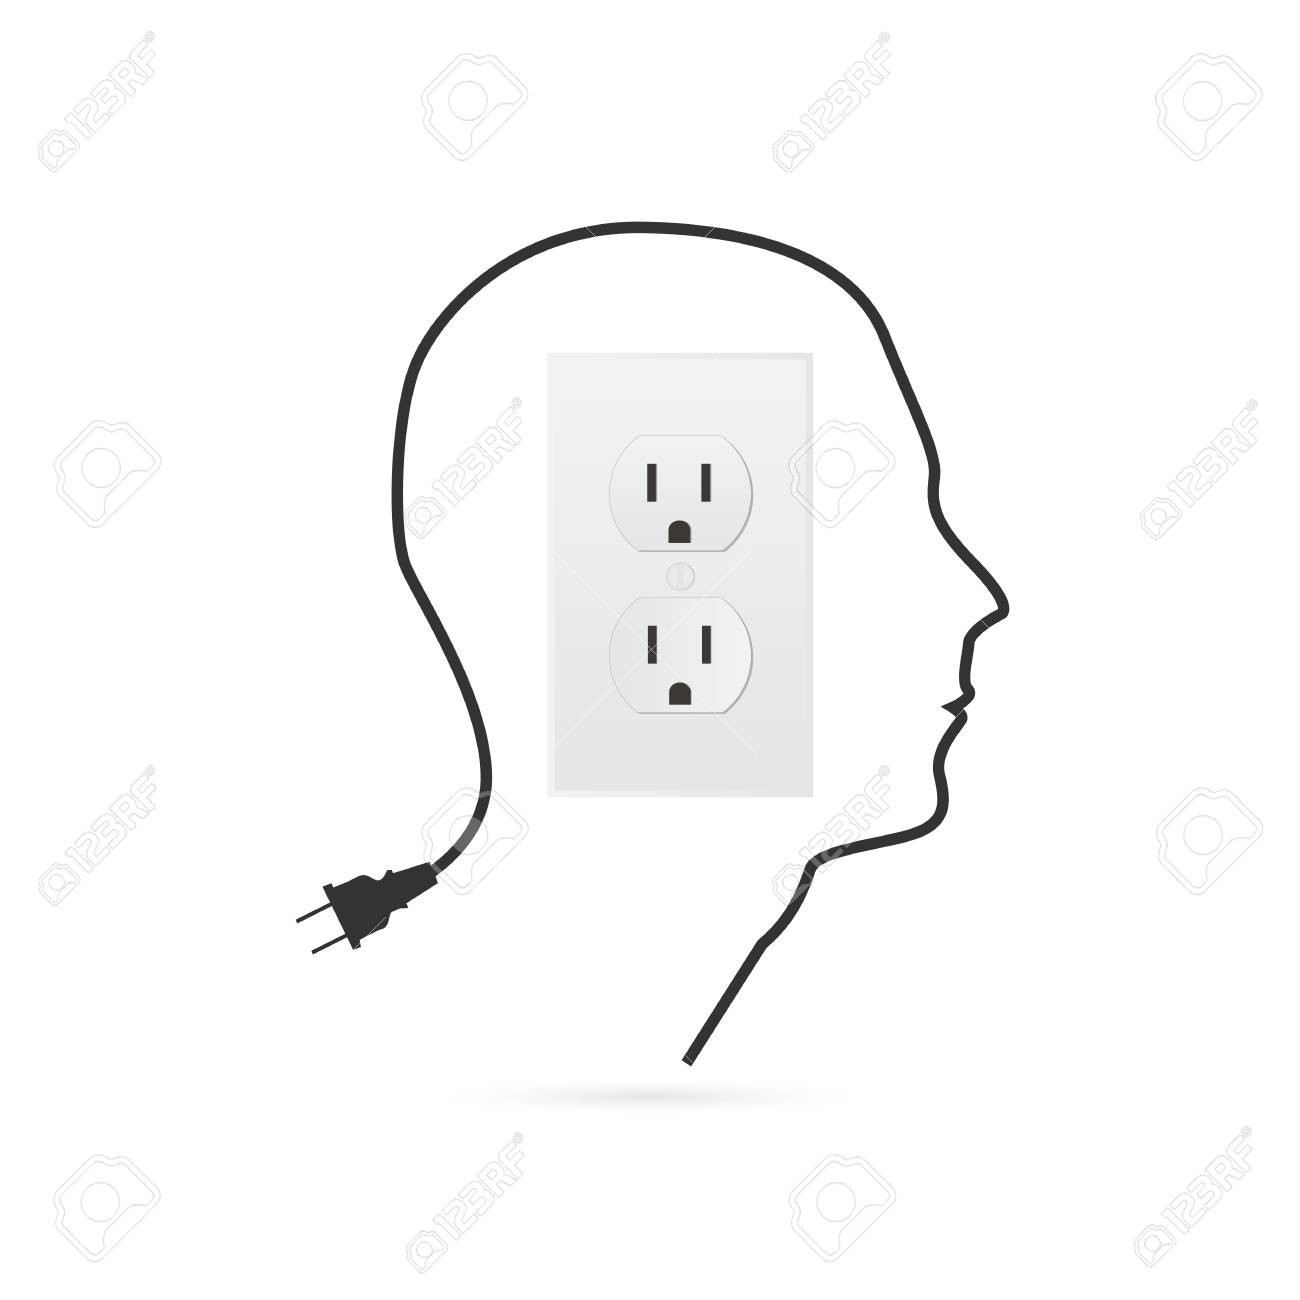 Illustration of a power outlet design isolated on a white background. - 97016106